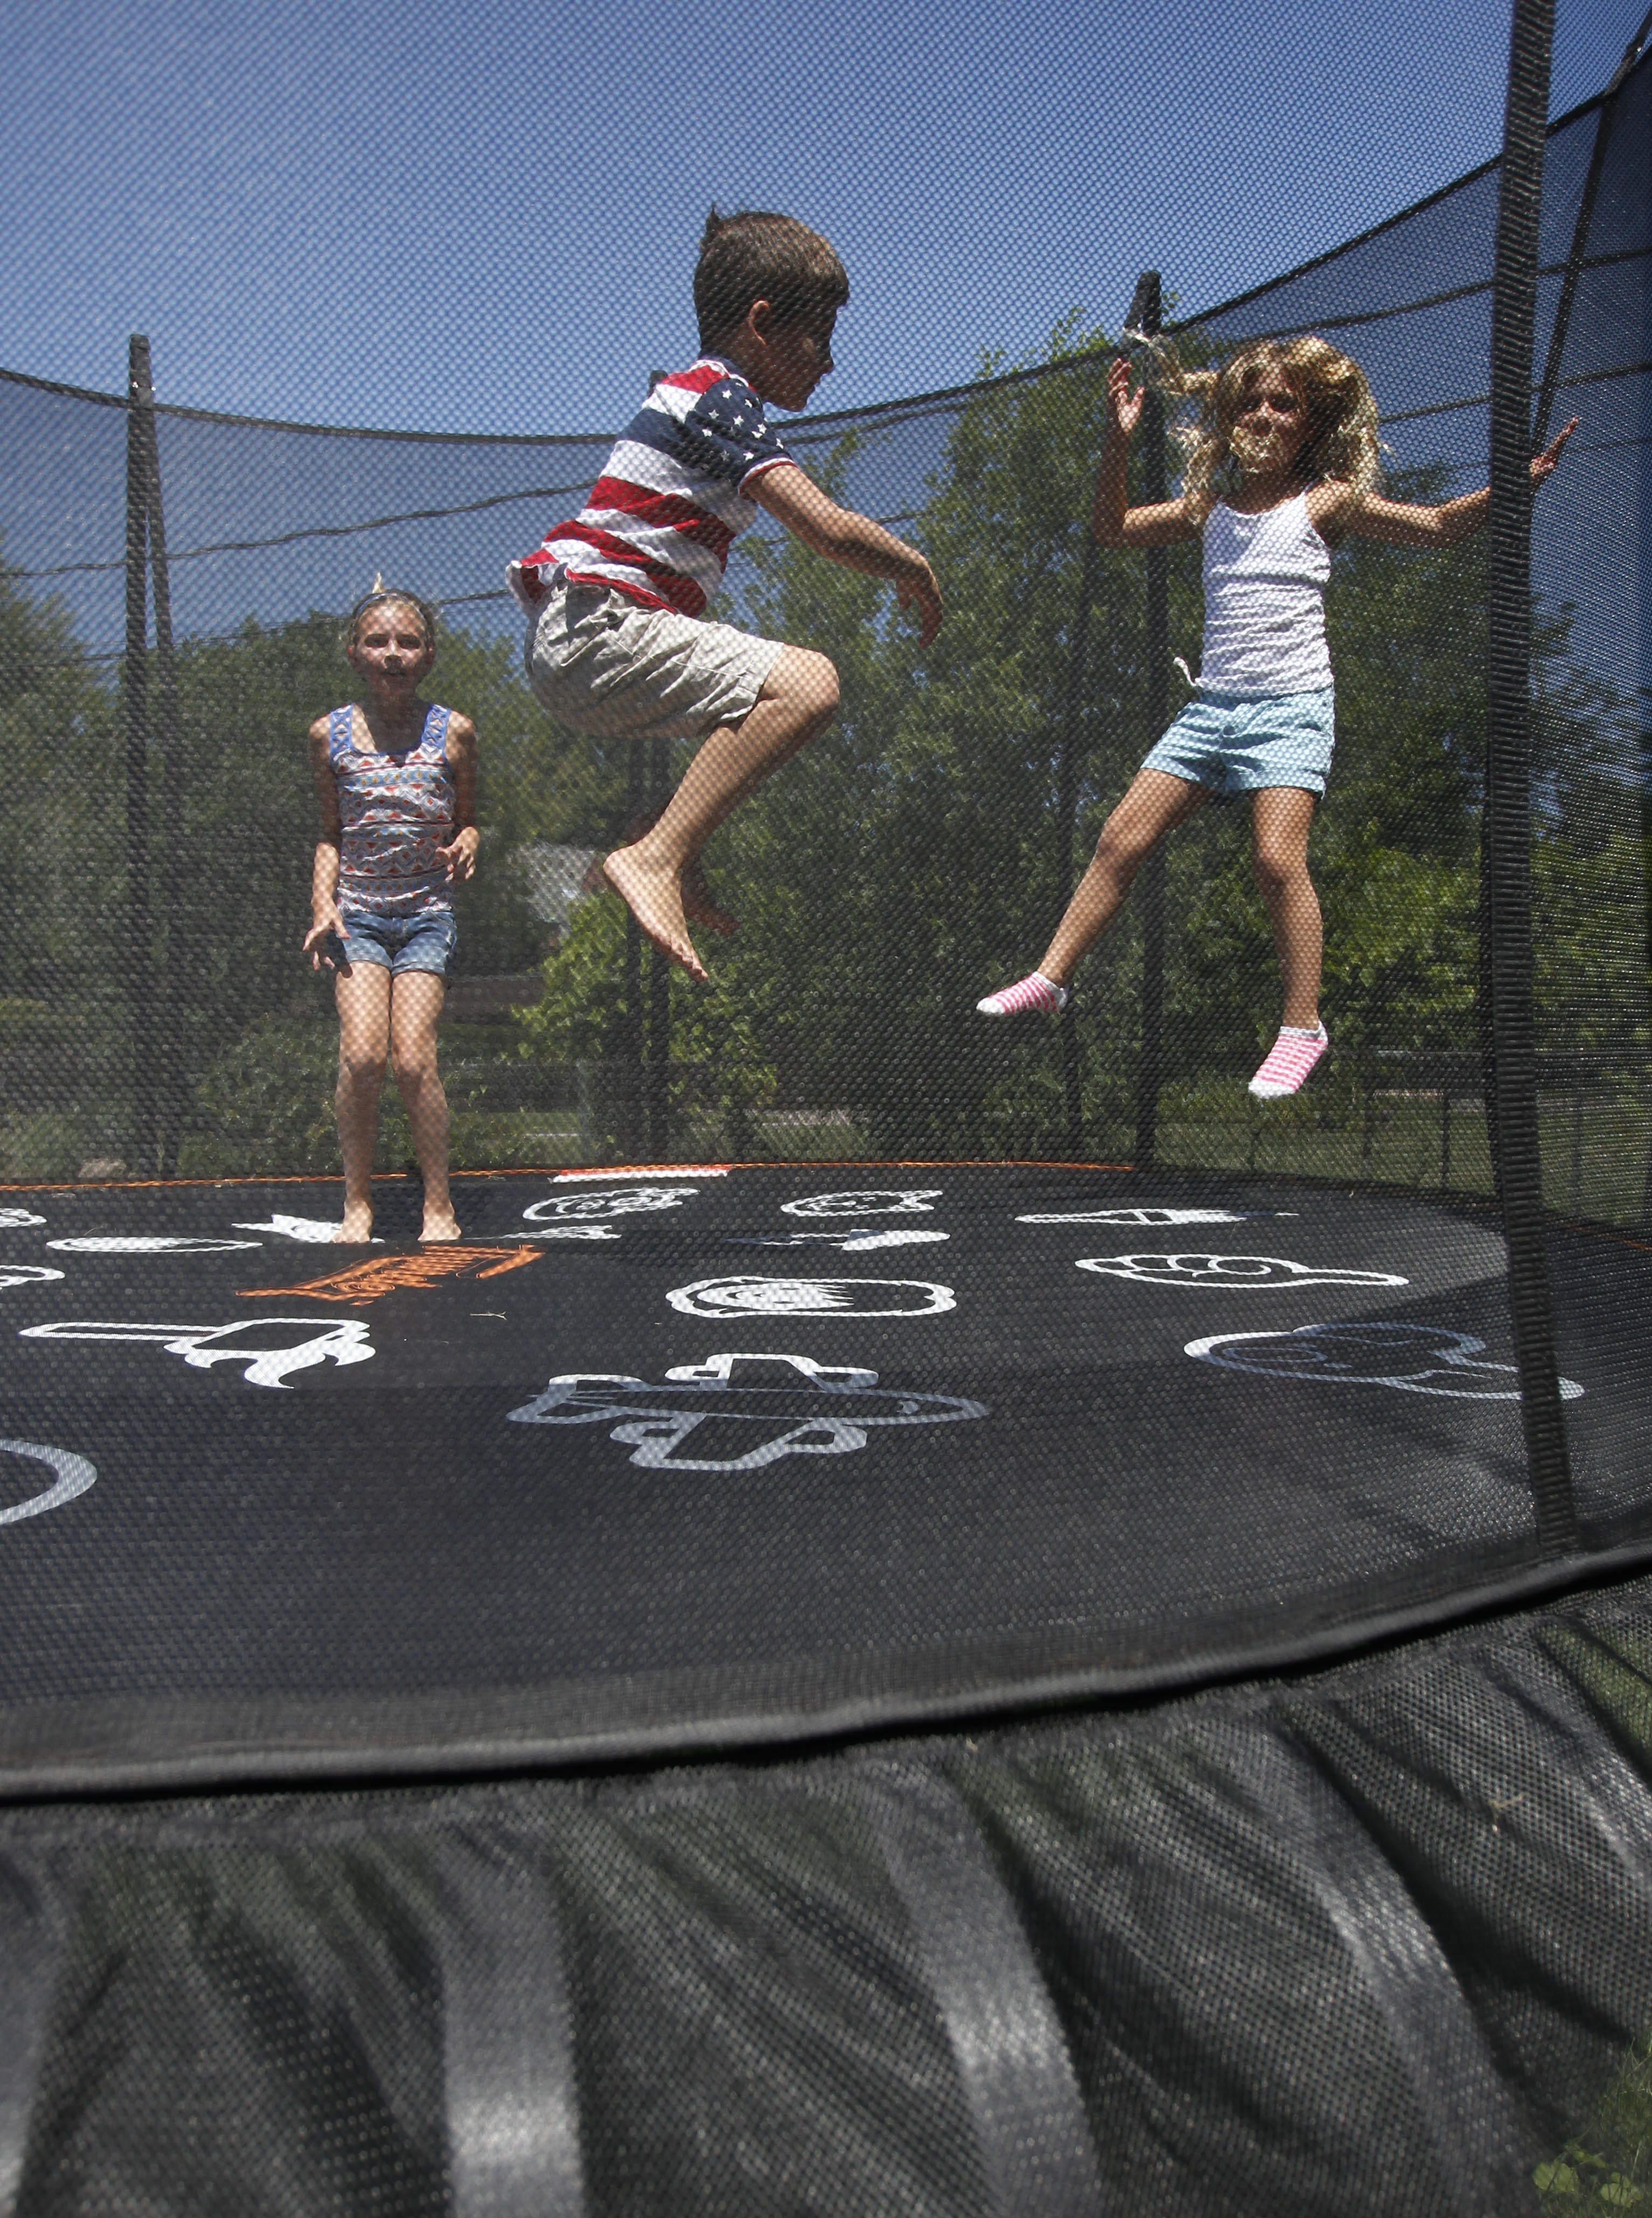 Ready, set, jump: Amy Habib Rittling of Amherst and her husband, Mark, bought a Vuly Thunder trampoline for summer fun. From left are a niece, Hailey Boyle, and A.J. and Haleigh Rittling.